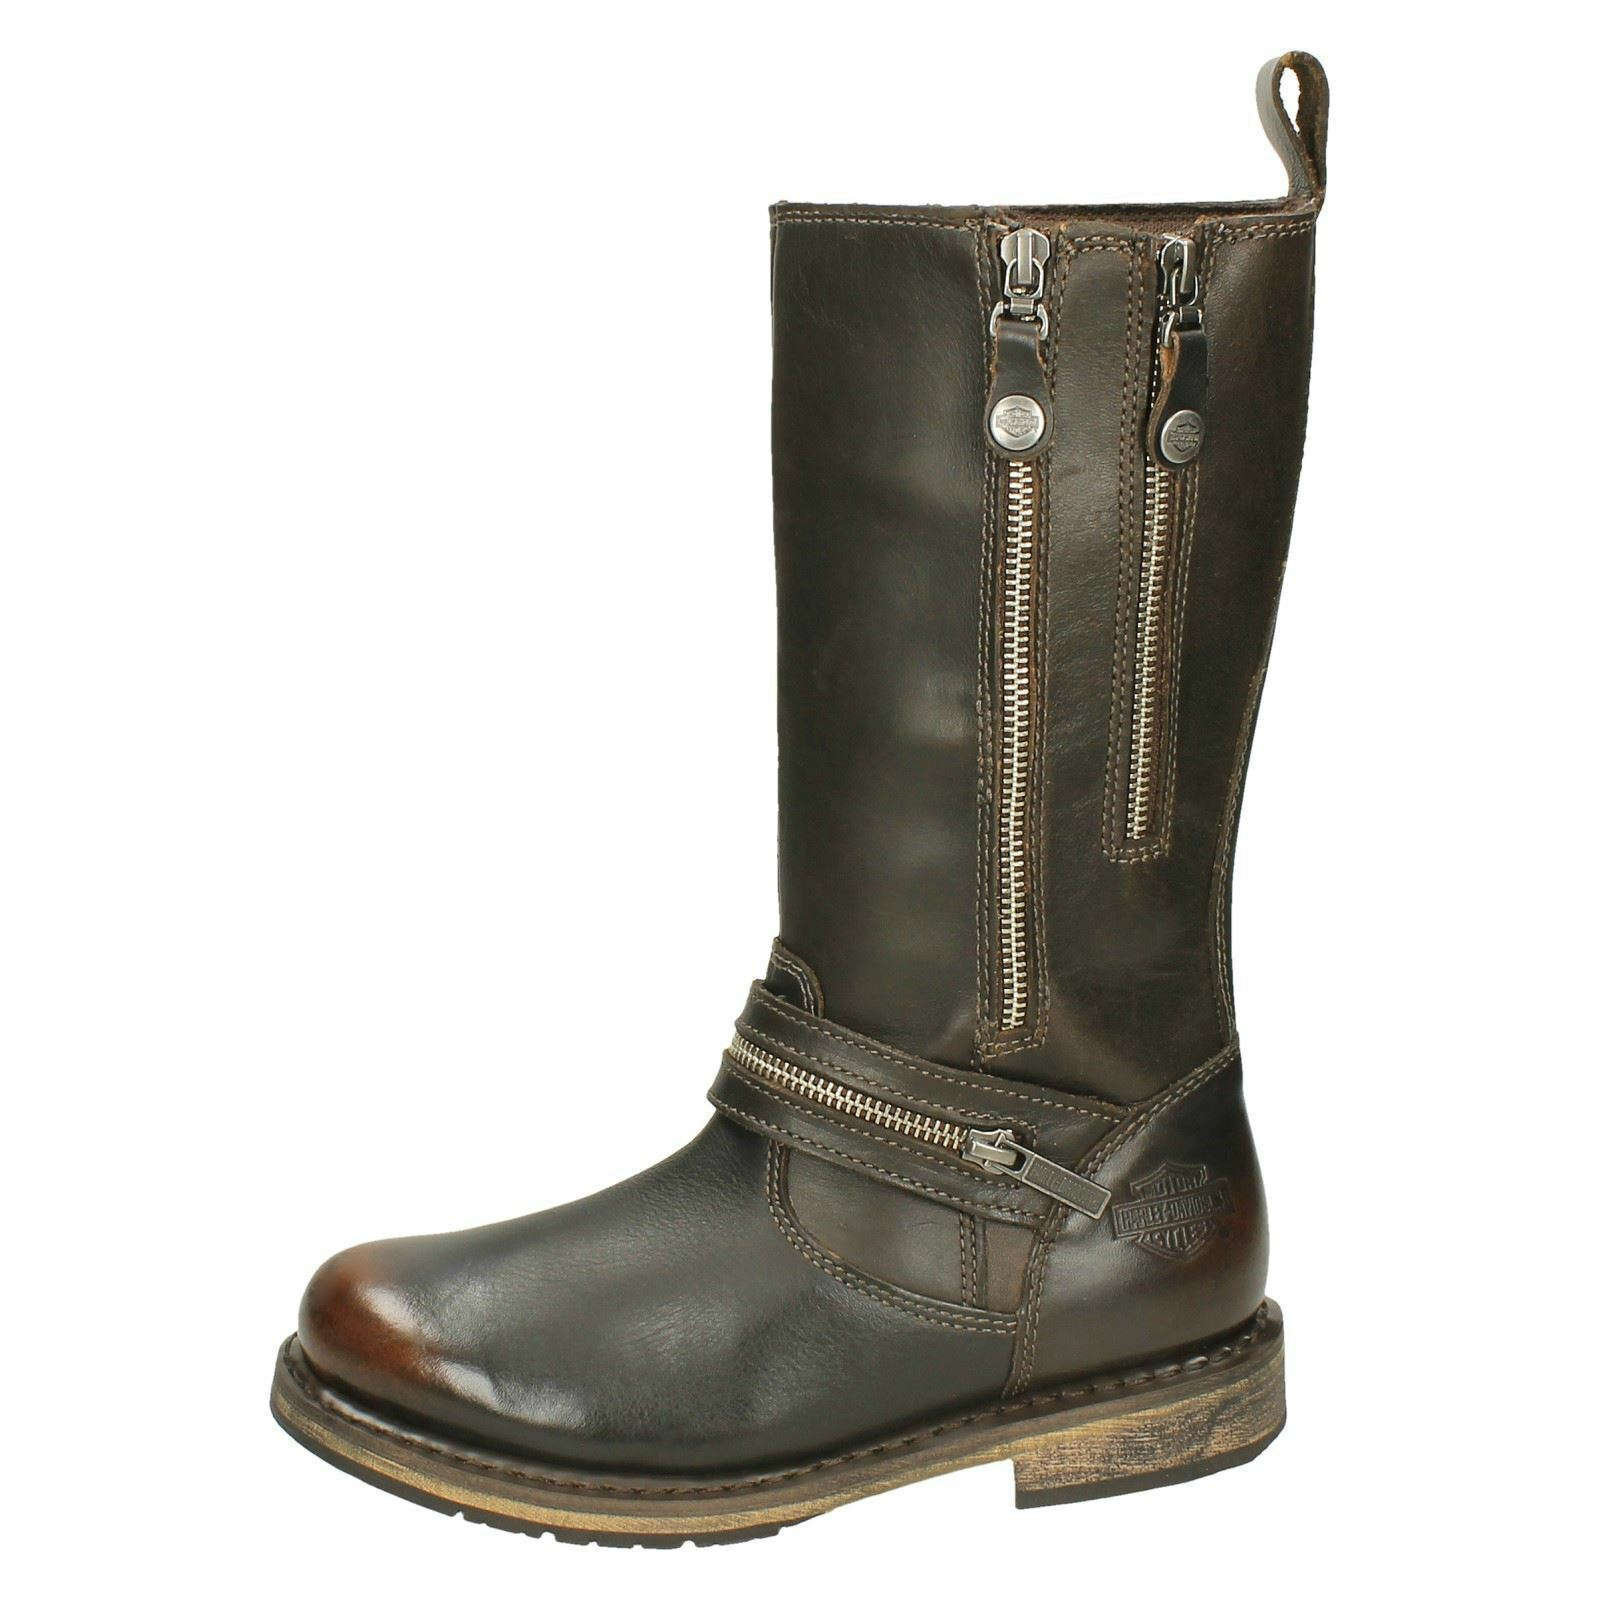 LADIES HARLEY- DAVIDSON BROWN LEATHER MID CALF CALF CALF BIKER Stiefel STYLE - SACKETT c90cad